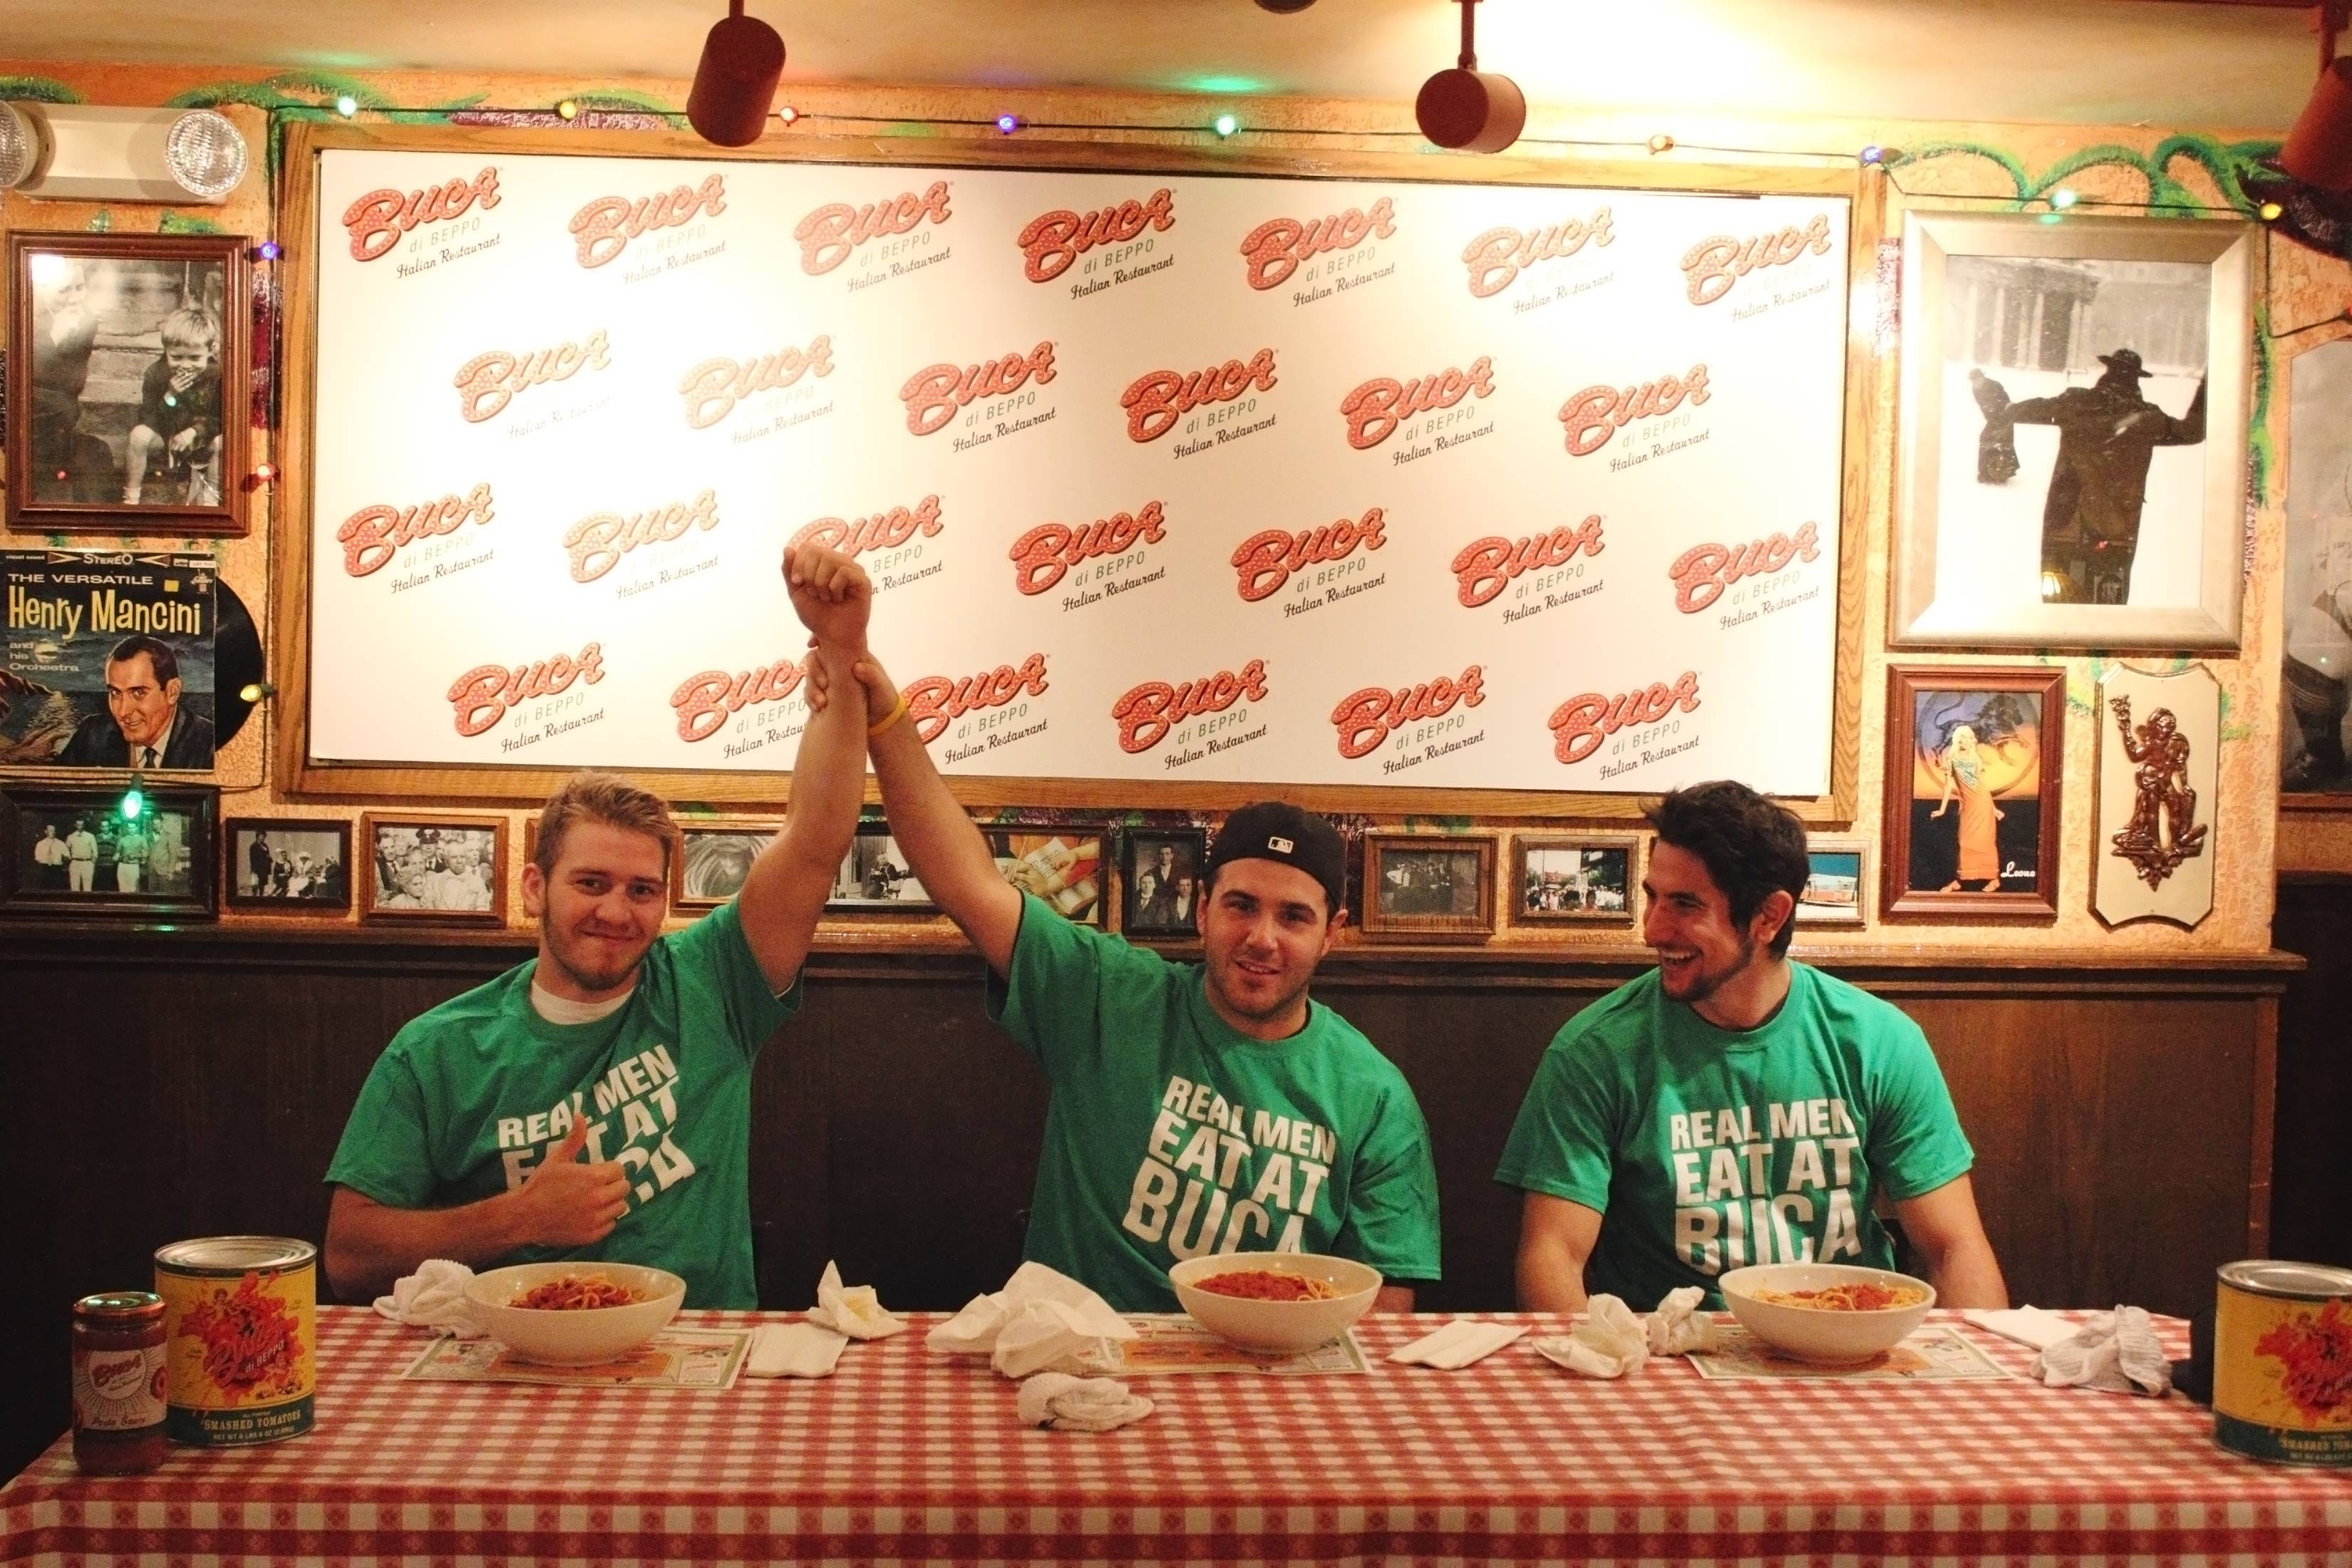 The Las Vegas Wranglers Hockey team celebrate World Pasta Day at Buca di Beppo with a pasta eating contest and meatball slapshots. Photos: Buca di Beppo